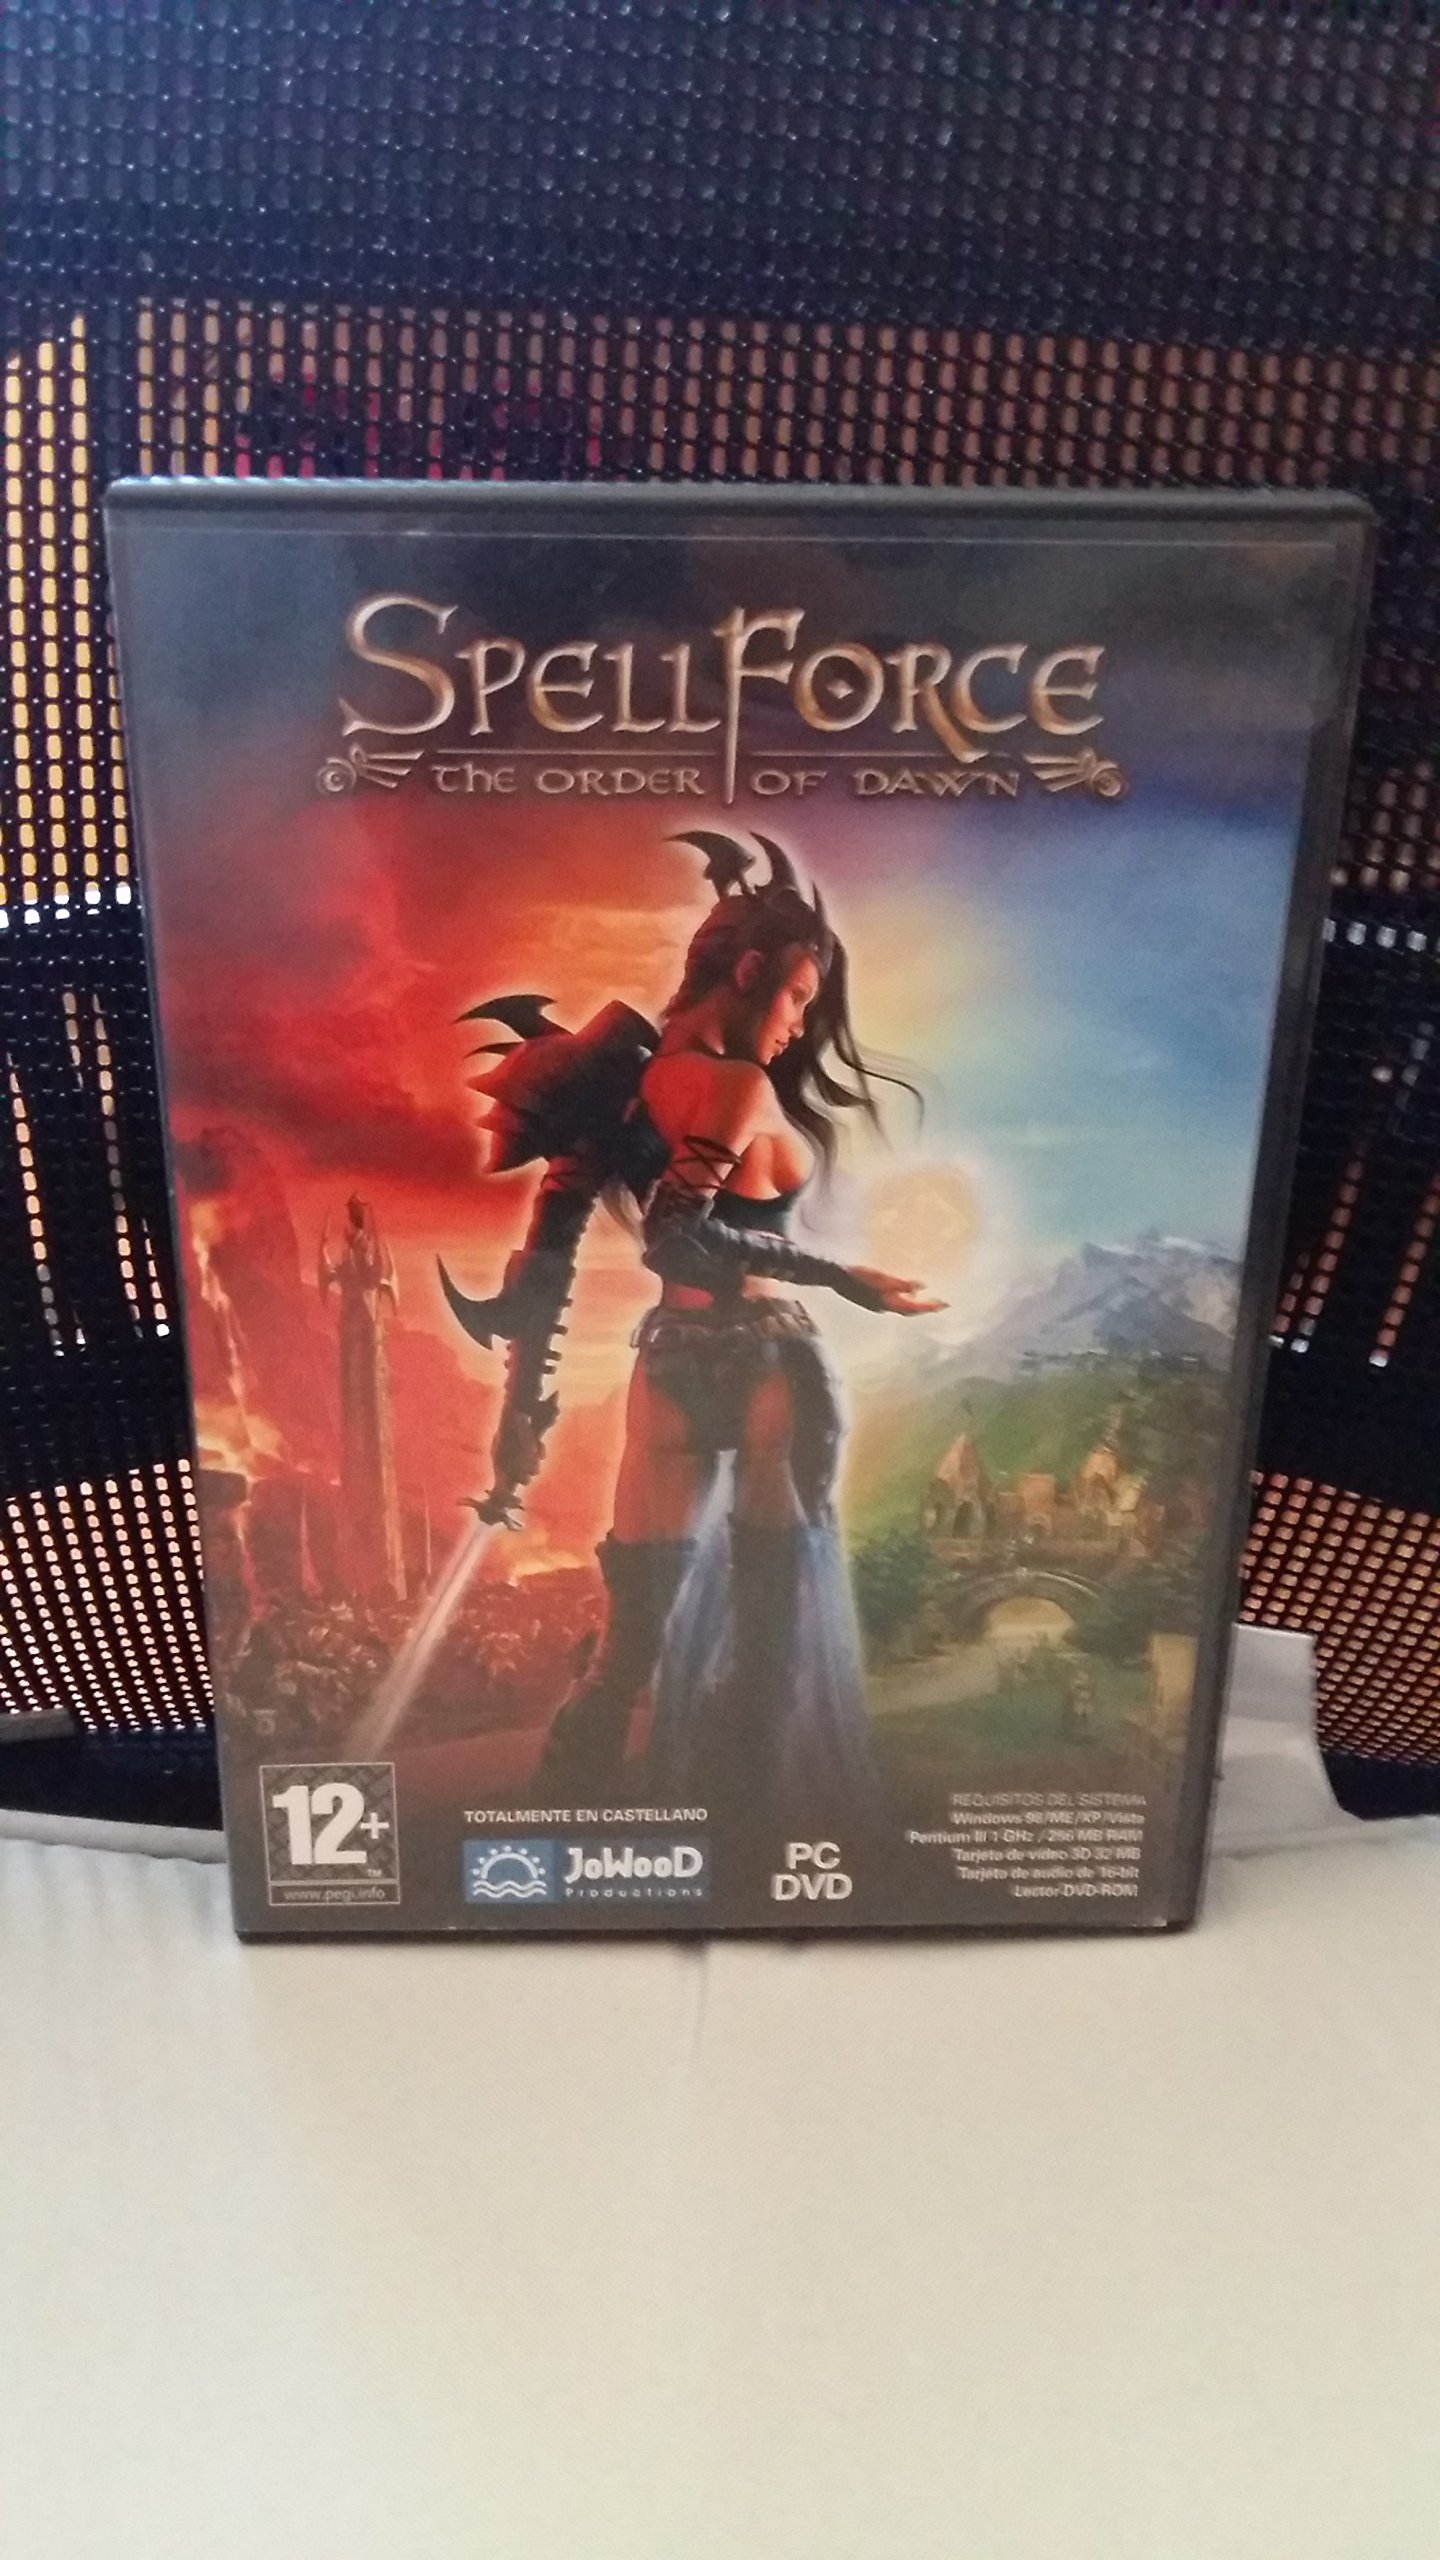 Amazon.com: SpellForce: the Order of Dawn (PC) by JoWood ...